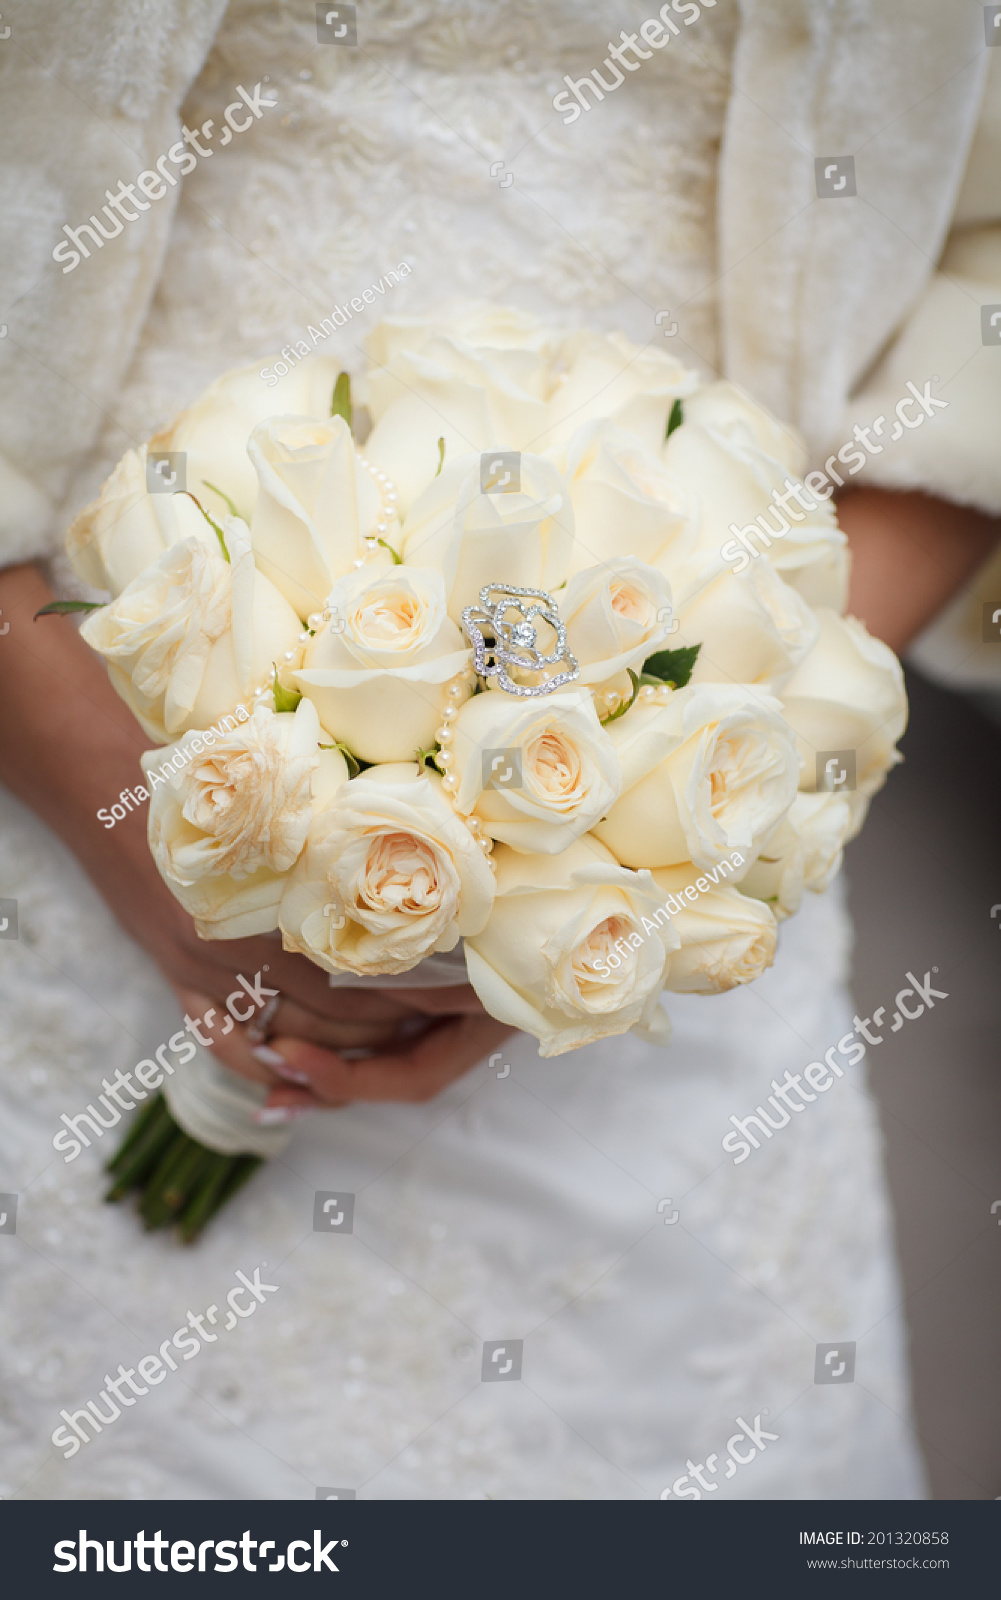 Wedding Flowers Bouquet White Roses Bride Stock Photo Royalty Free